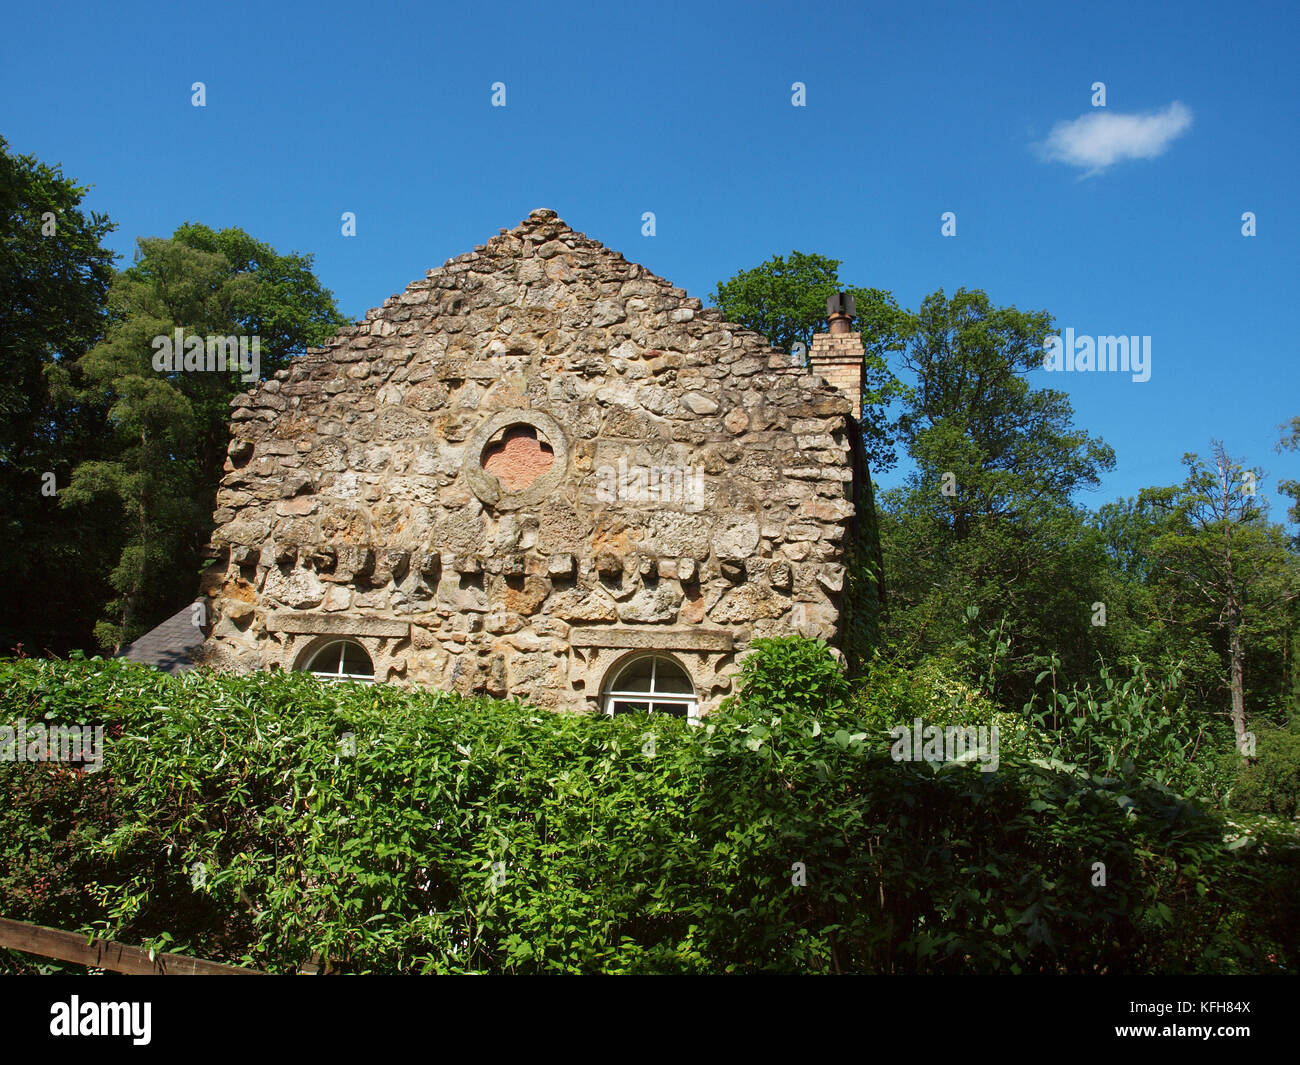 A cottage with an old stone wall facade situated on its own land amongst trees, shrubs and blue skies.          - Stock Image